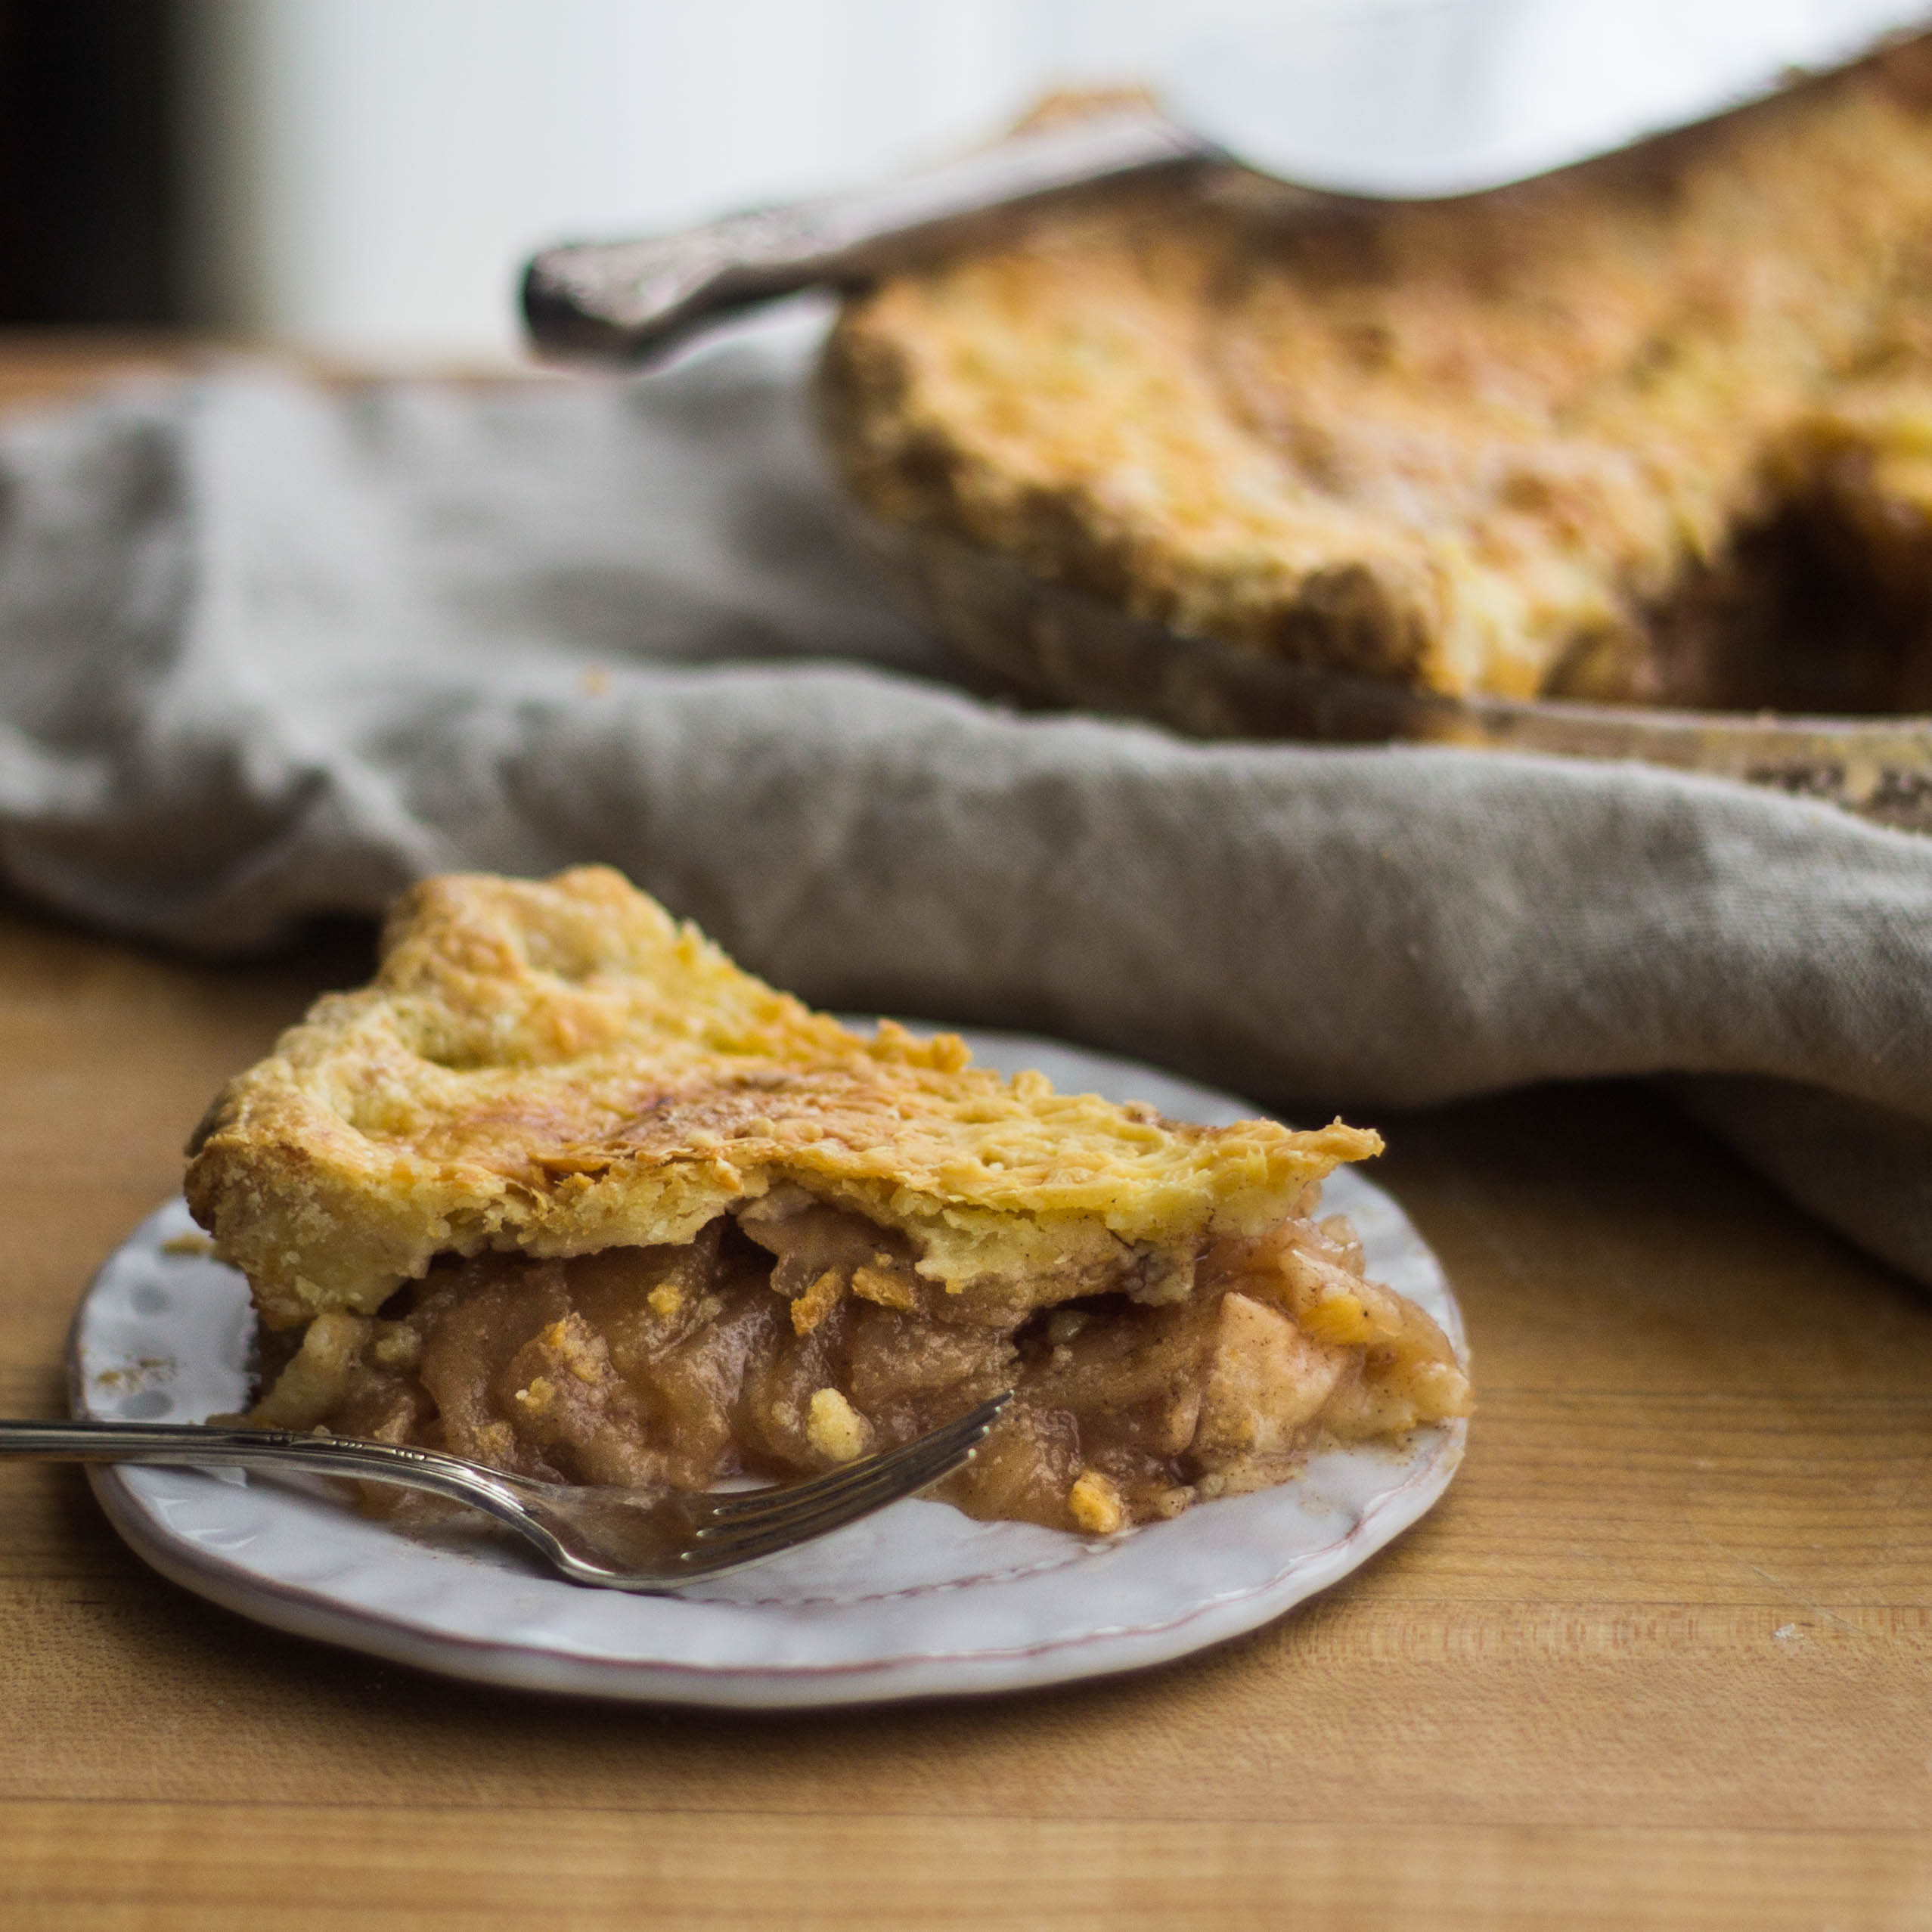 ... cheddar apple pie recipe on food52 brown butter and cheddar apple pie